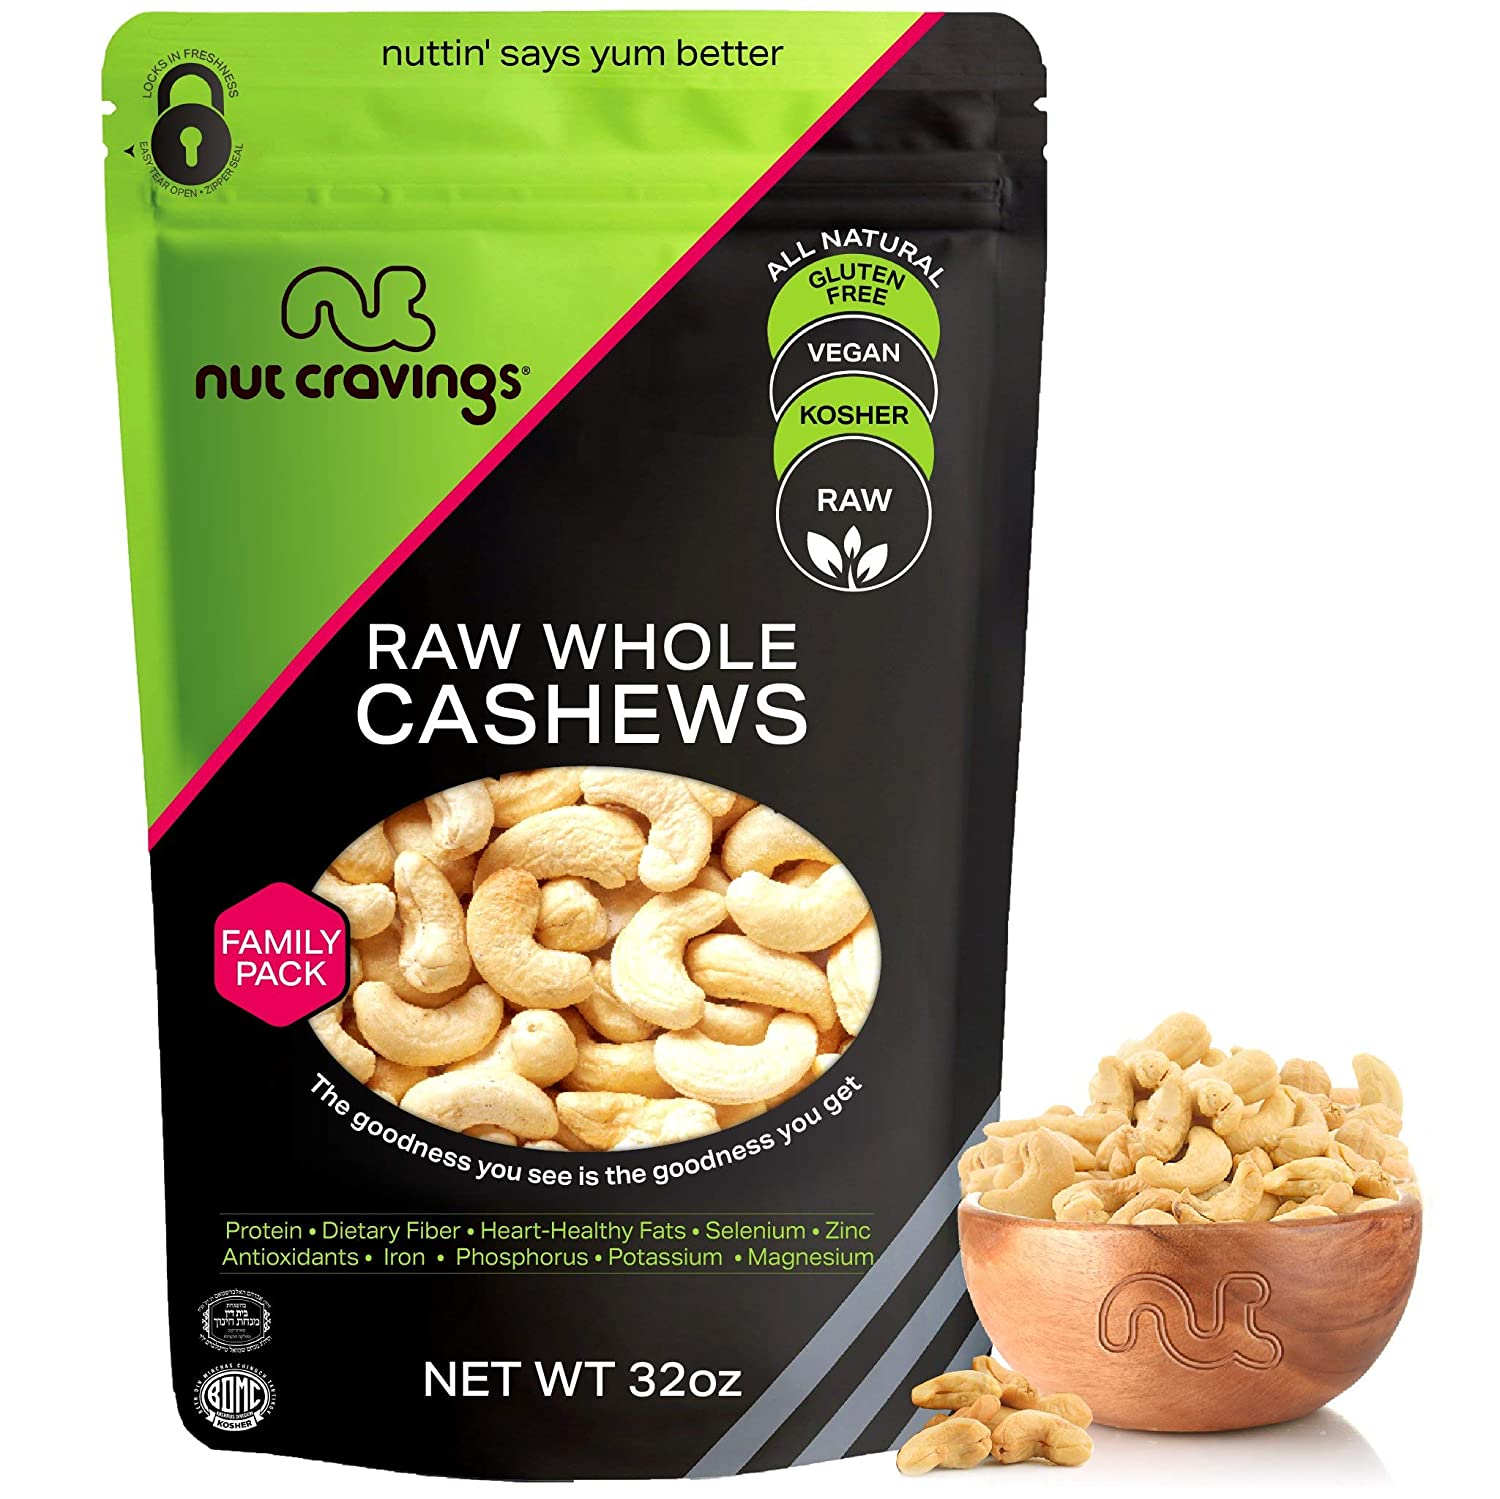 Raw Whole Cashews - Unsalted, Superior to Organic (32oz - 2 Pound) Packed Fresh in Resealable Bag - Nut Trail Mix Snack - Healthy Protien Food, All Natural, Keto Friendly, Vegan, Kosher